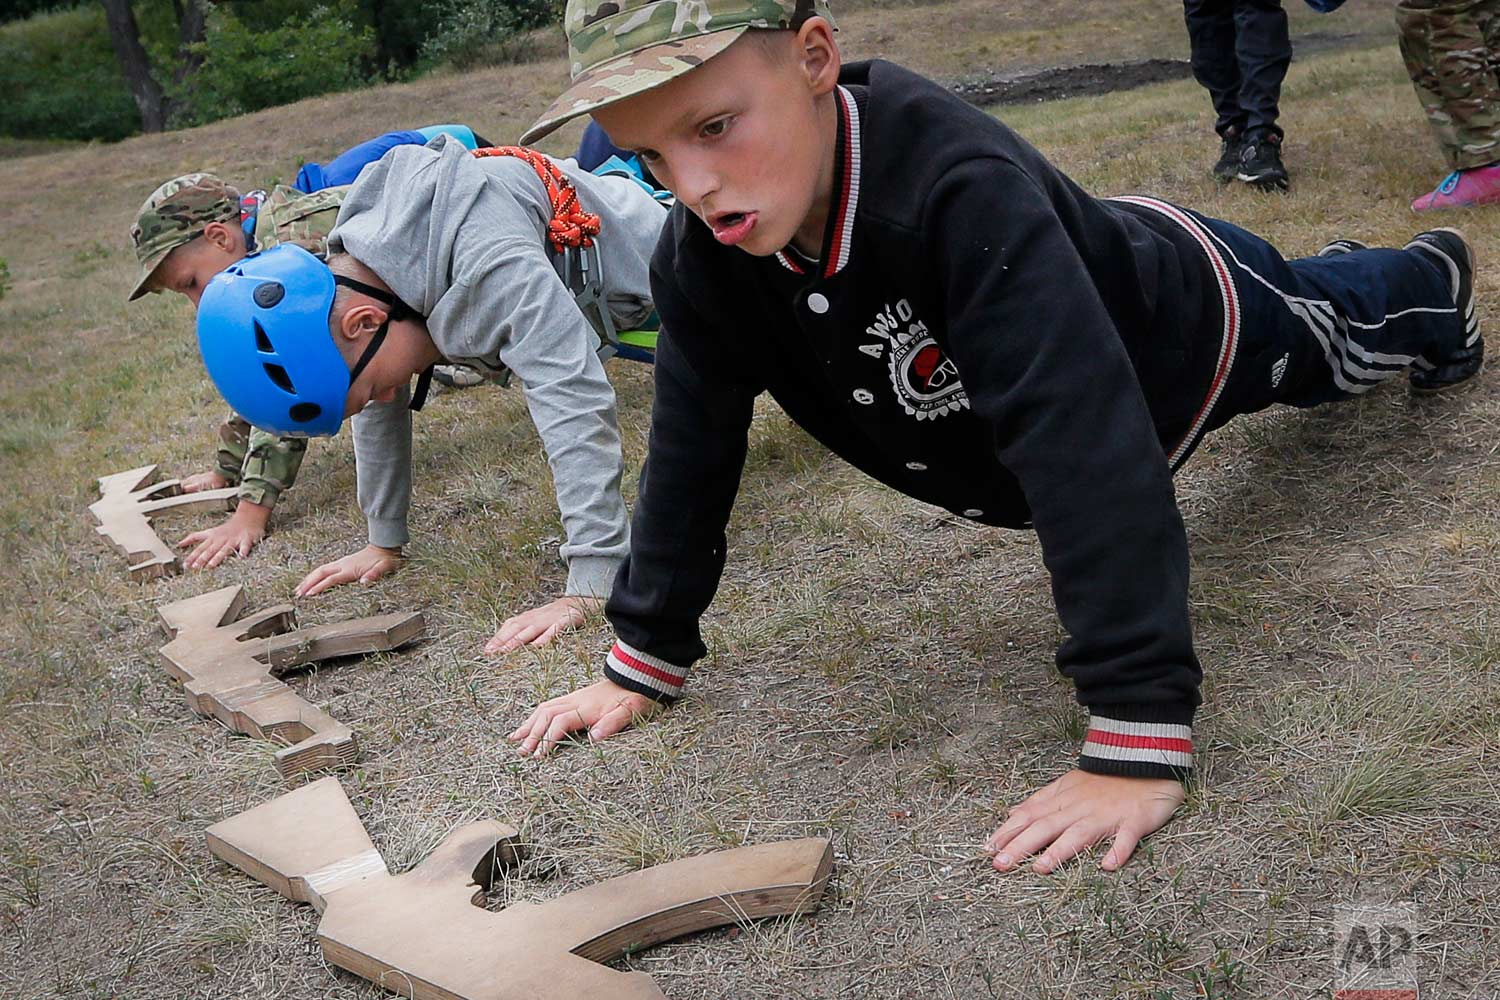 In this photo taken on Friday, July 14, 2017, students at a paramilitary camp for children do push-ups outside Kiev, Ukraine. (AP Photo/Efrem Lukatsky)